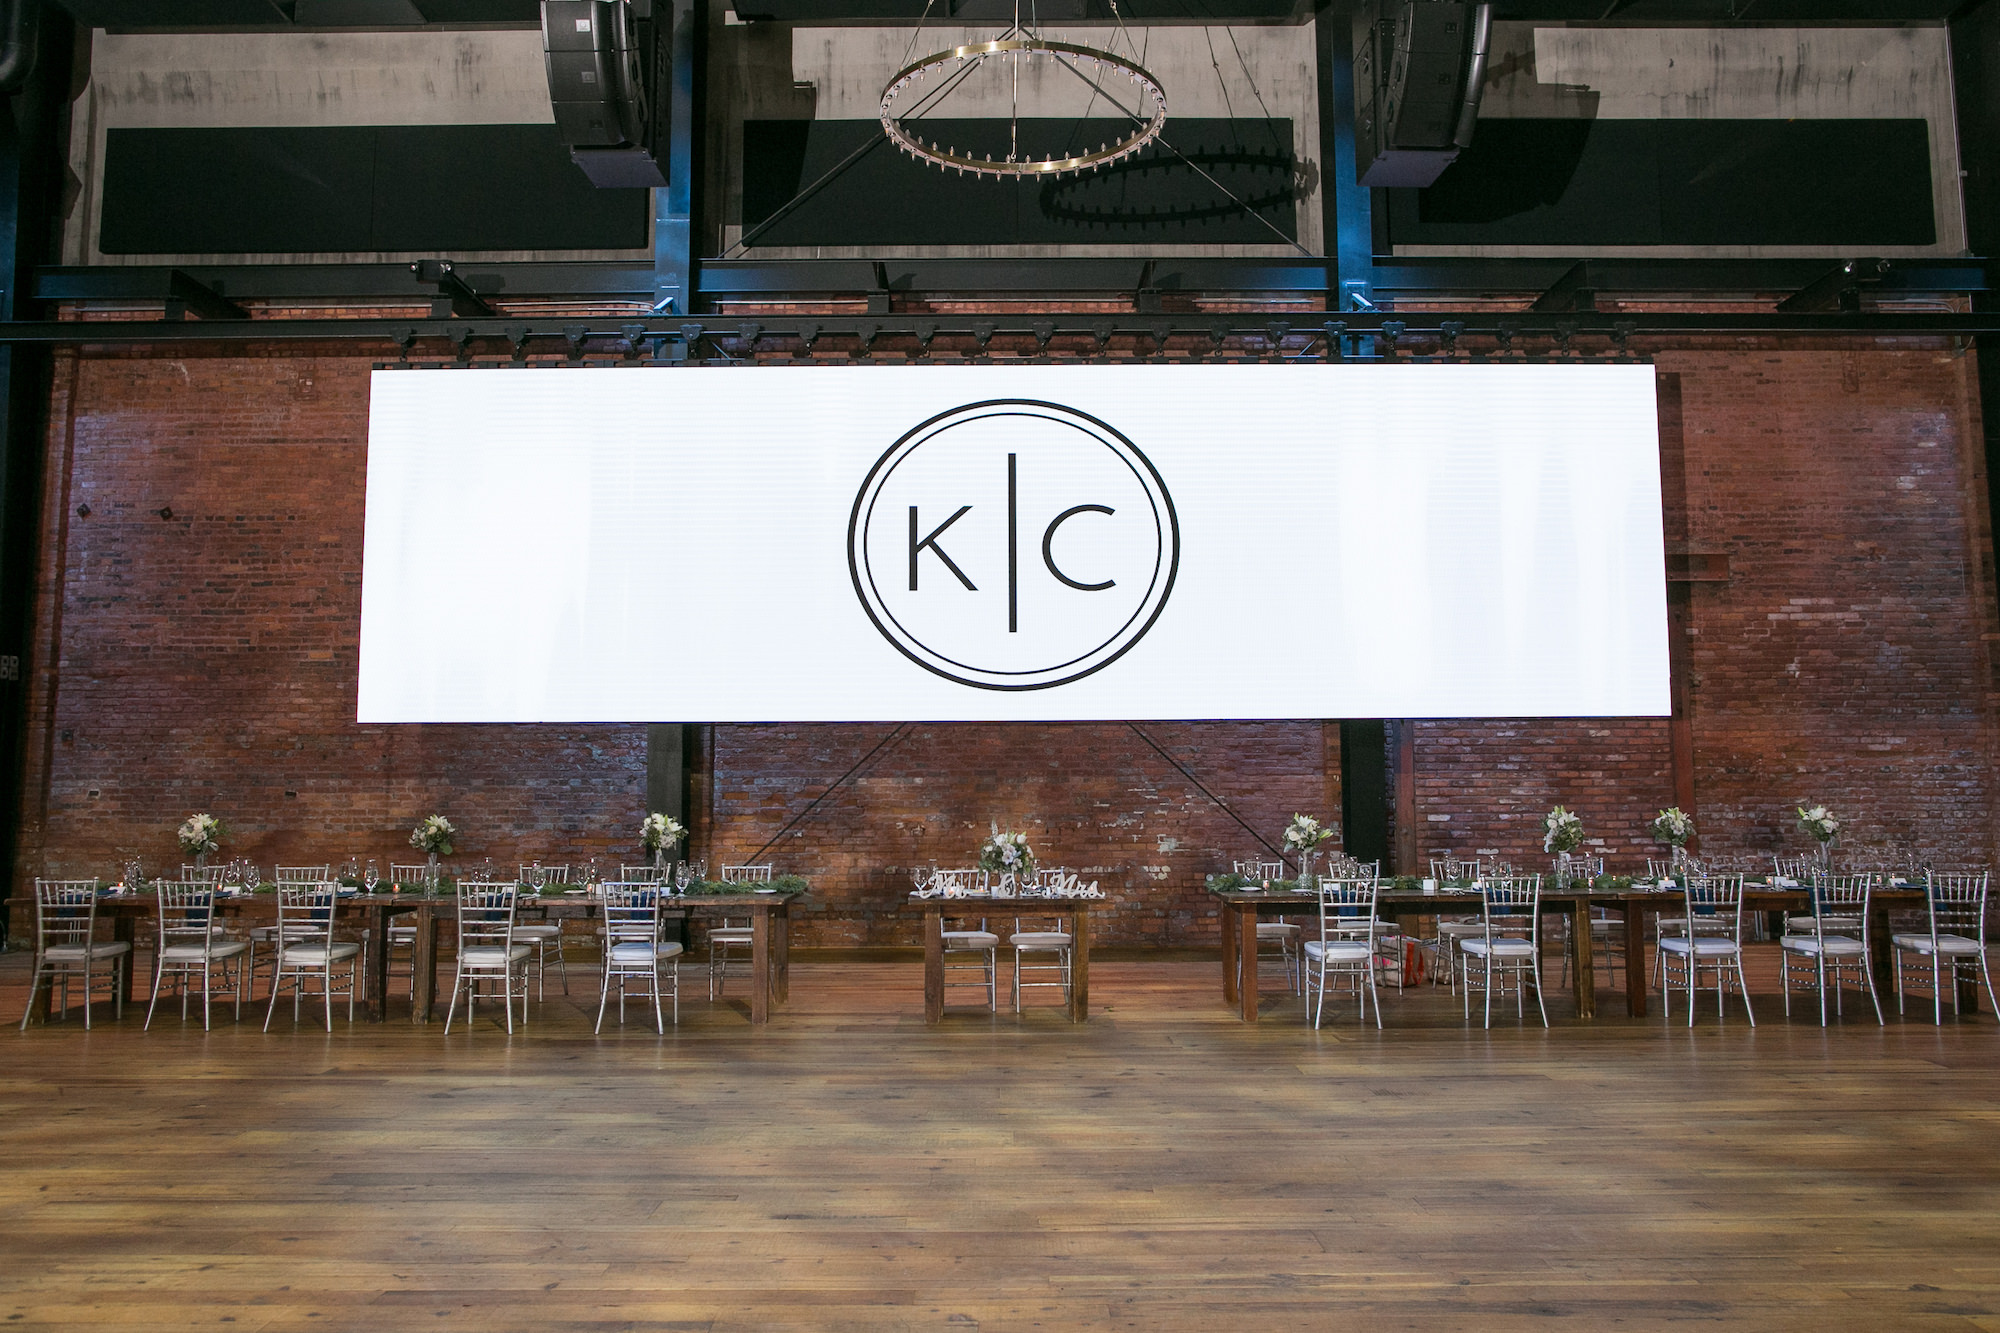 Large Custom Monogram White Banner, Long Wooden Feasting Tables with Silver Chiavari Chairs   Tampa Bay Wedding Photographer Carrie Wildes Photography   Wedding Planner Love Lee Lane   Industrial Historic Wedding Venue Armature Works   Chair and Table Rentals A Chair Affair